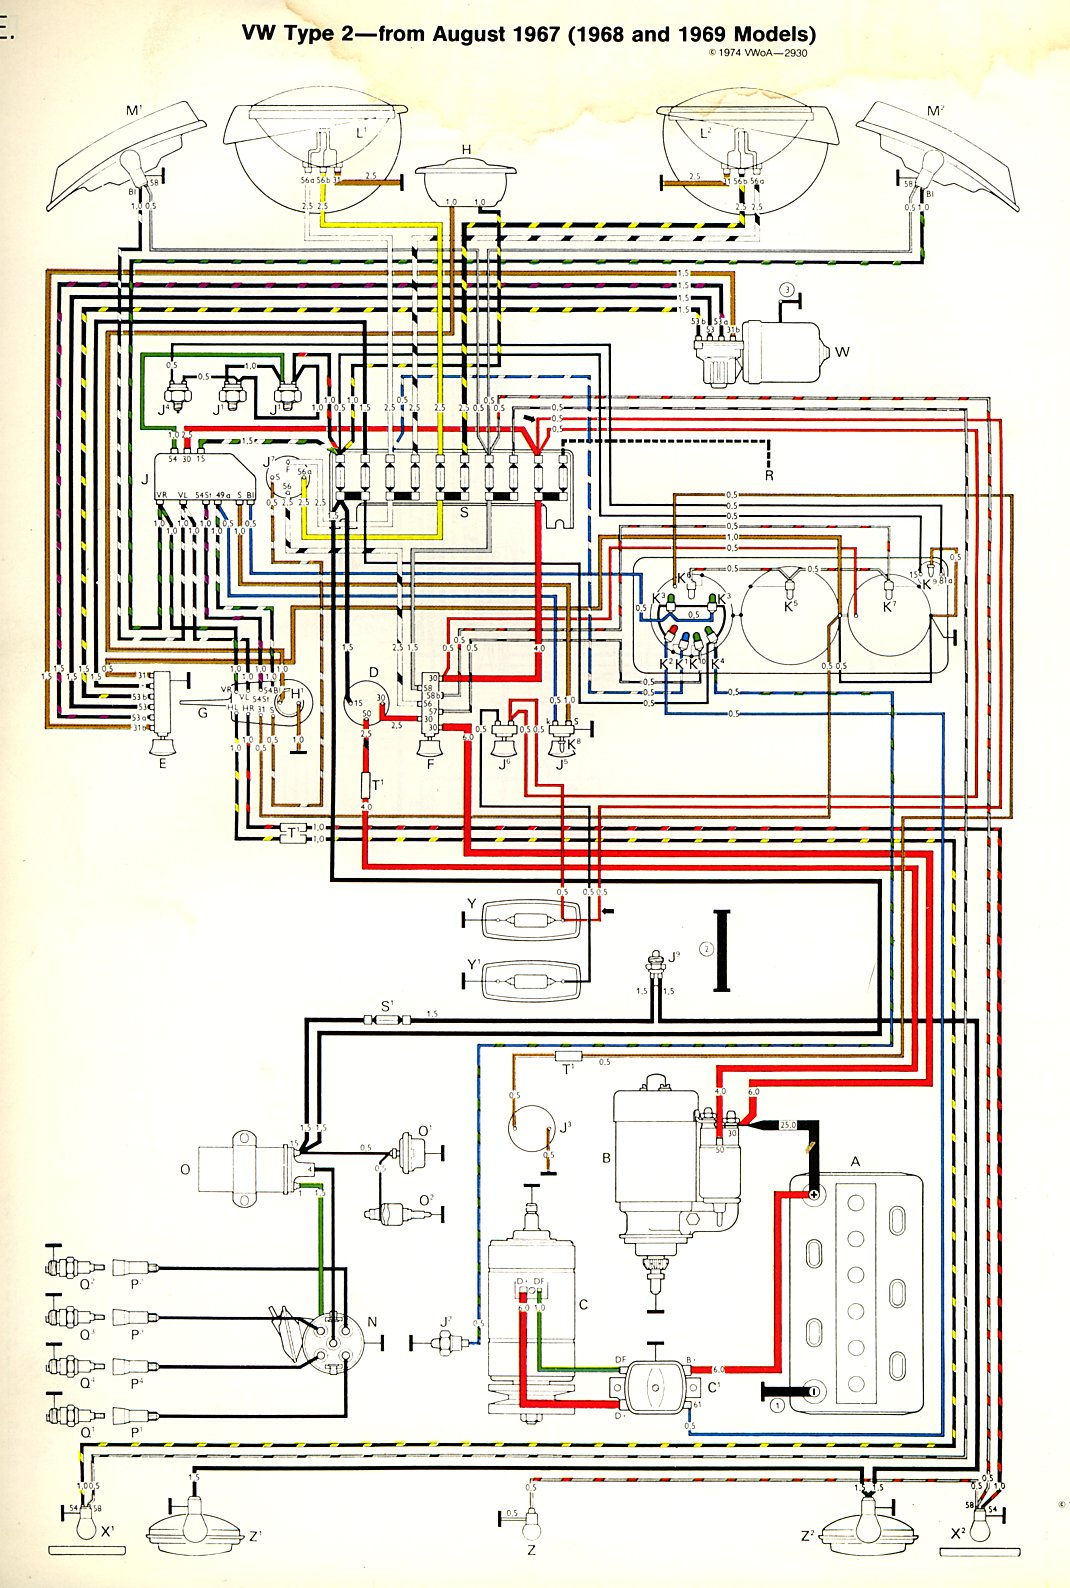 wiring diagram for 1964 vw bus information schematics wiring diagrams 1976 VW Bus Wiring Schematic